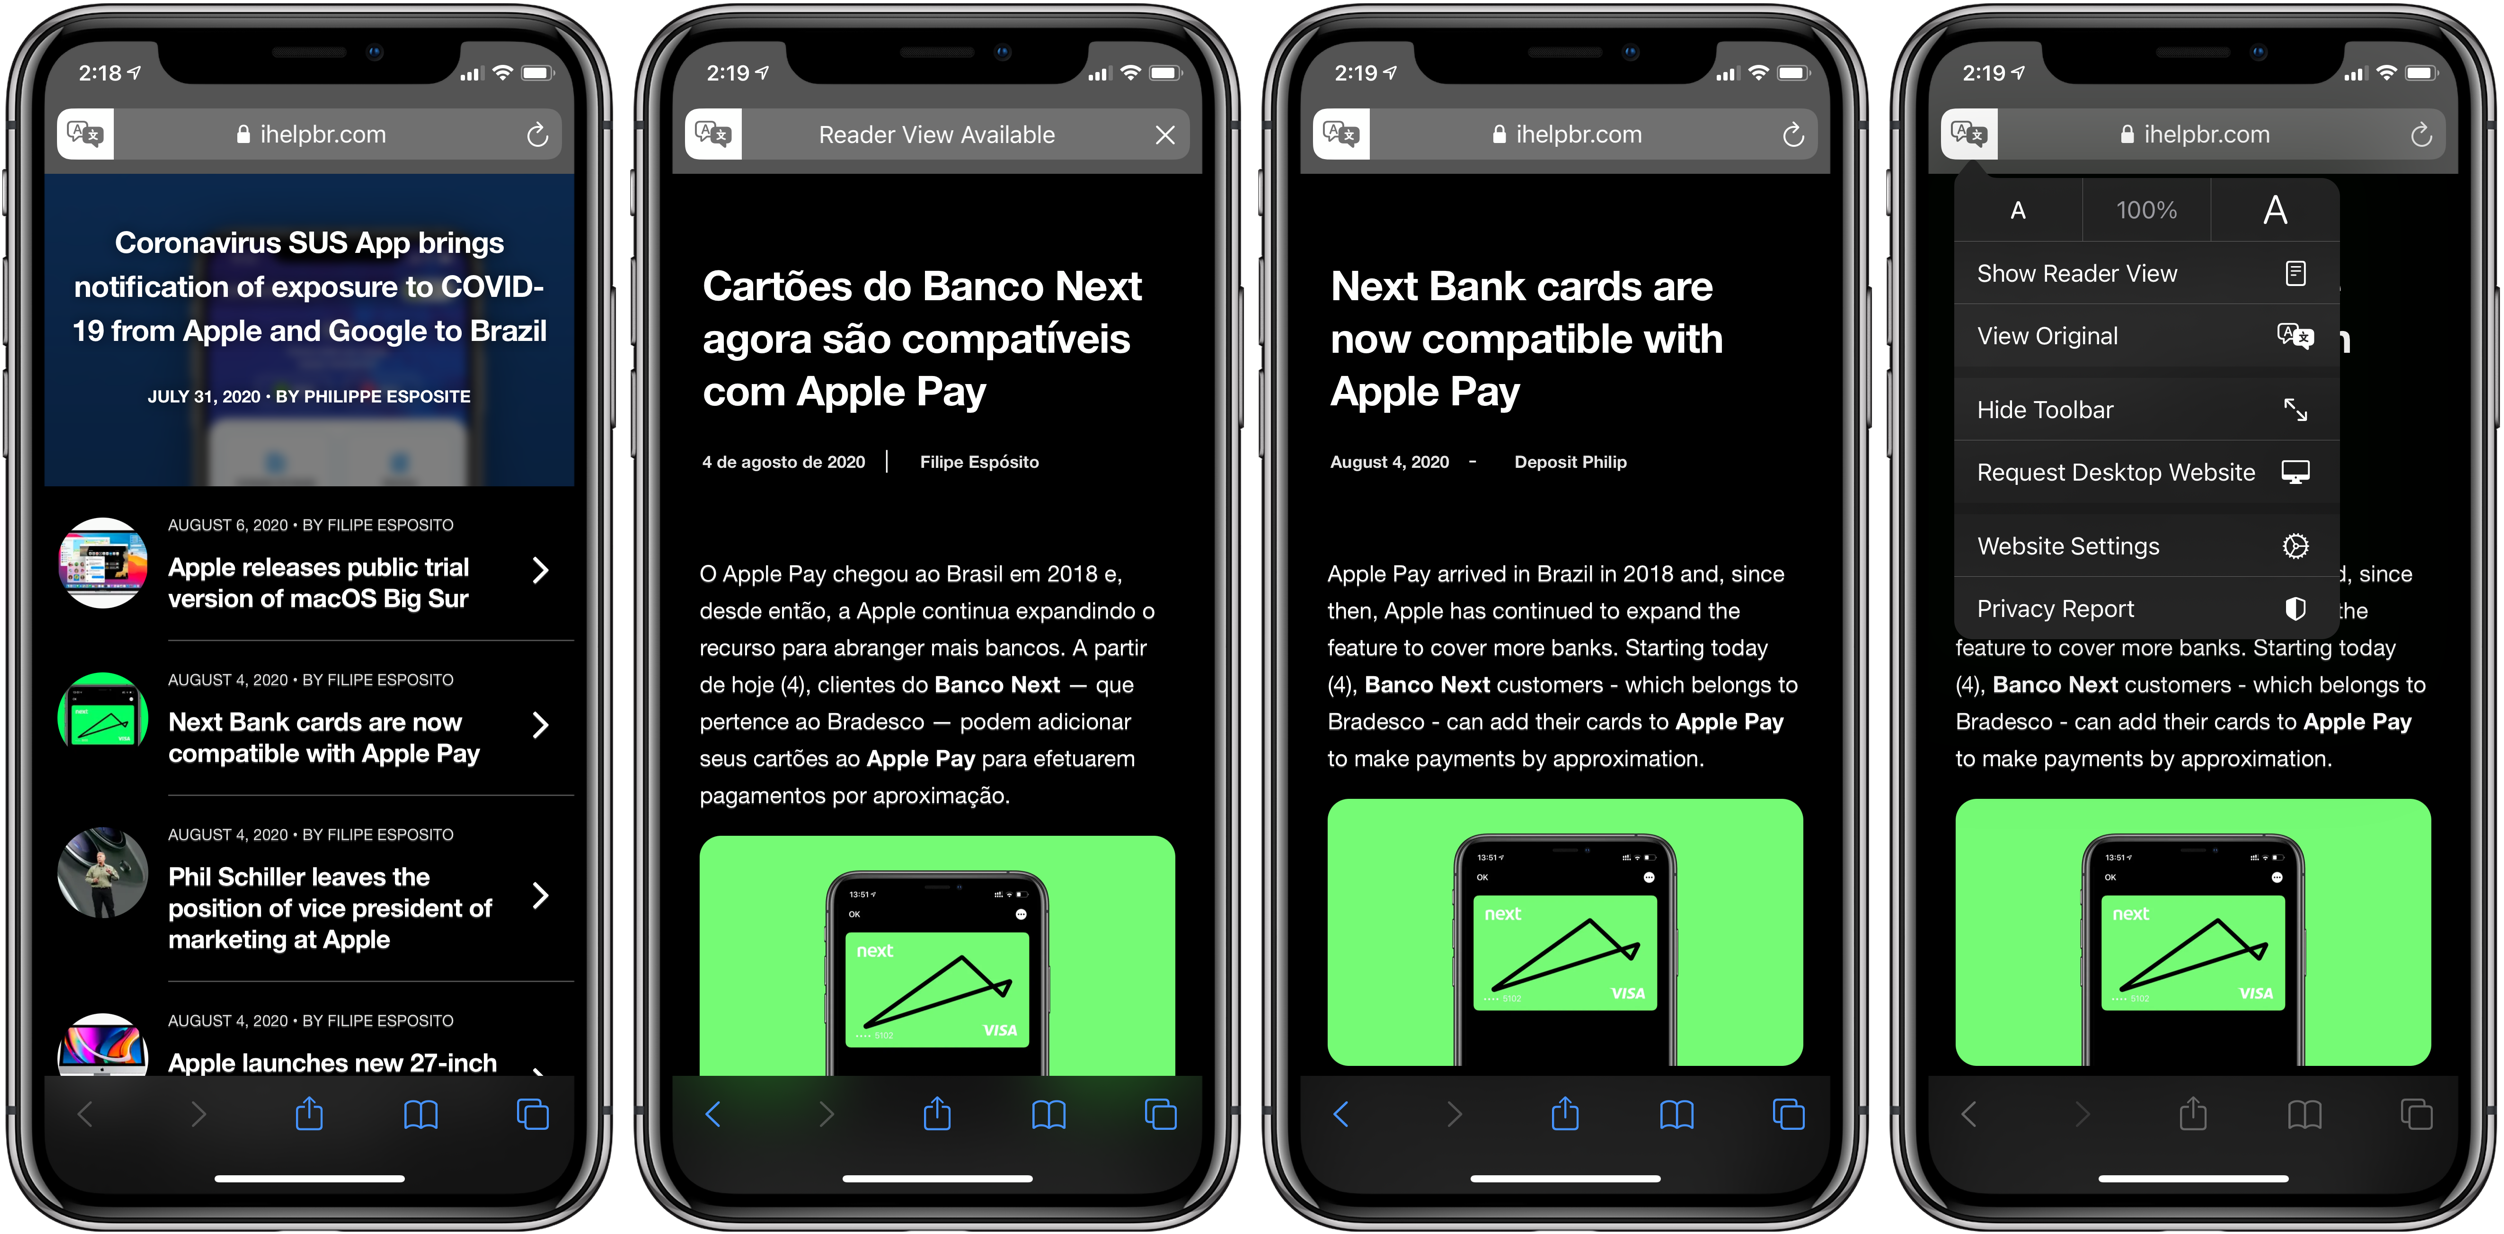 How to translate websites iPhone and iPad in iOS 14 walkthrough 2